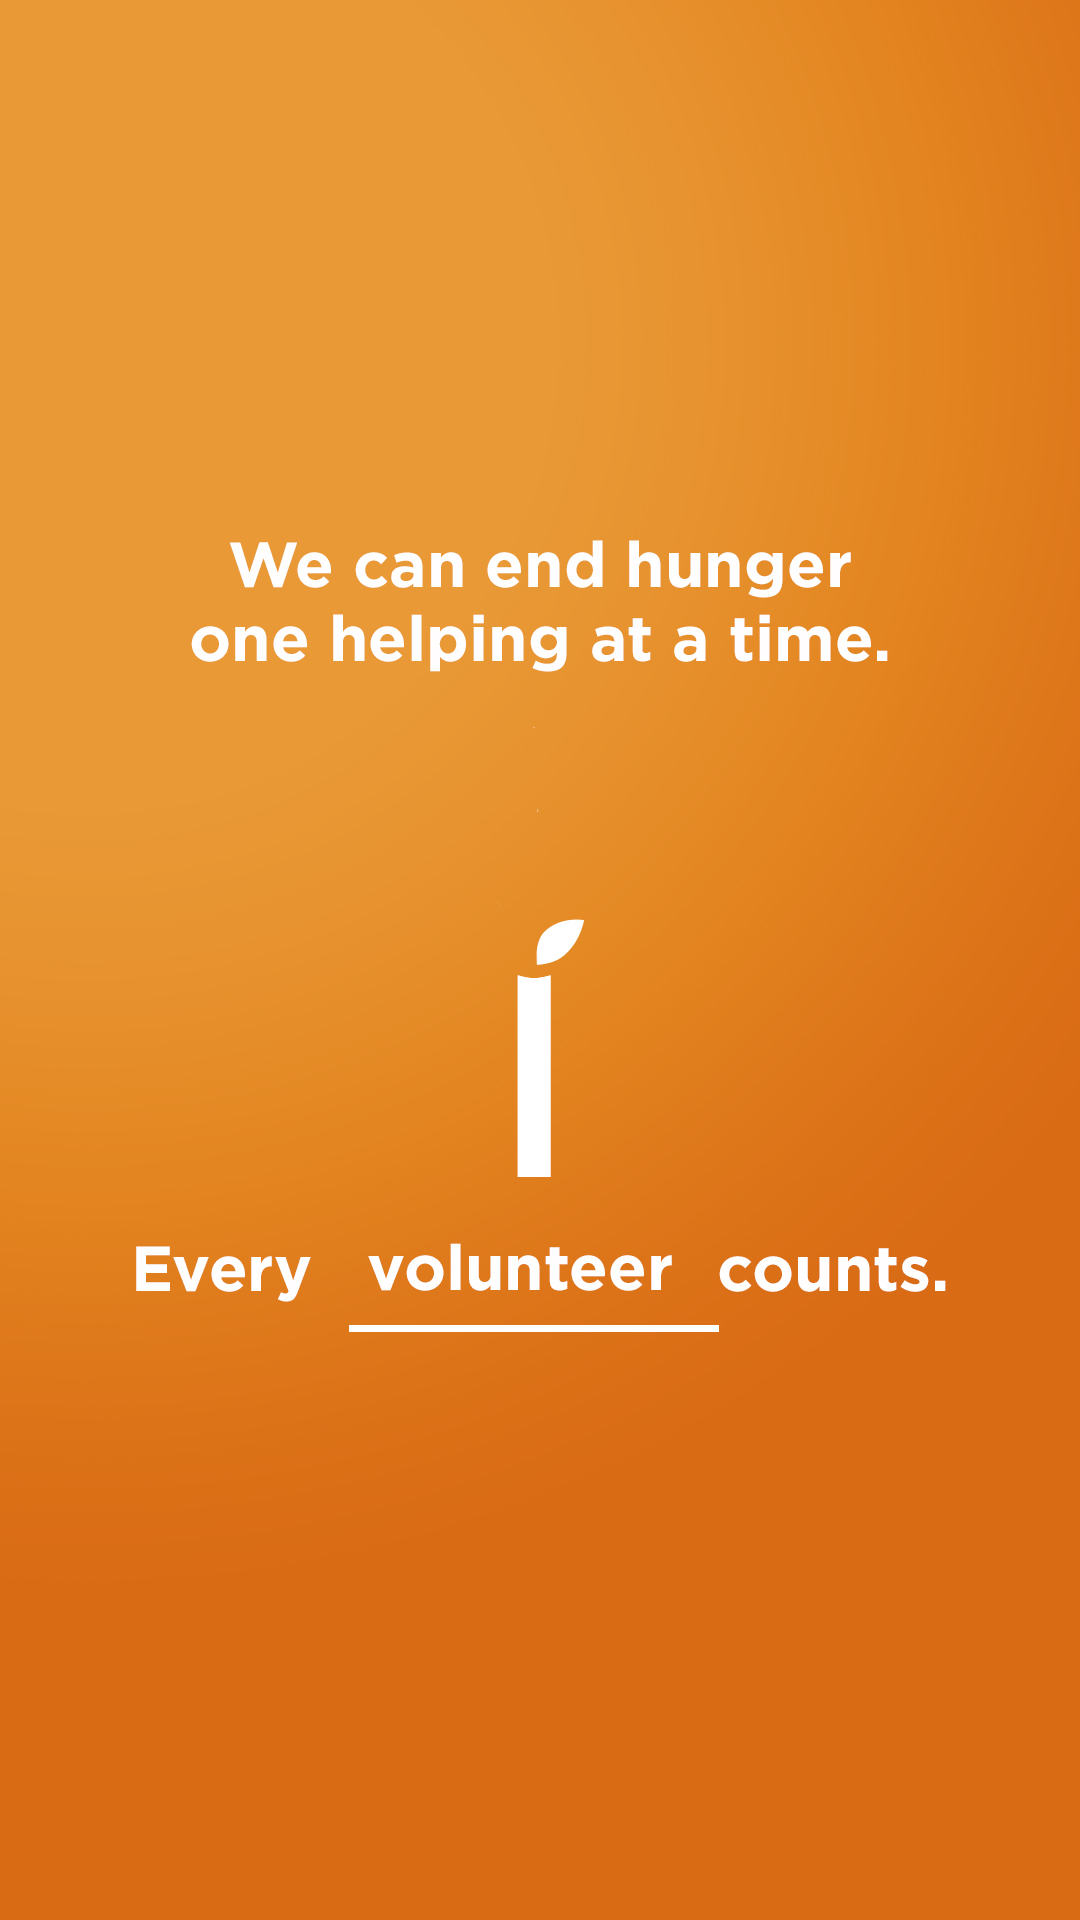 We can end hunger - Volunteer